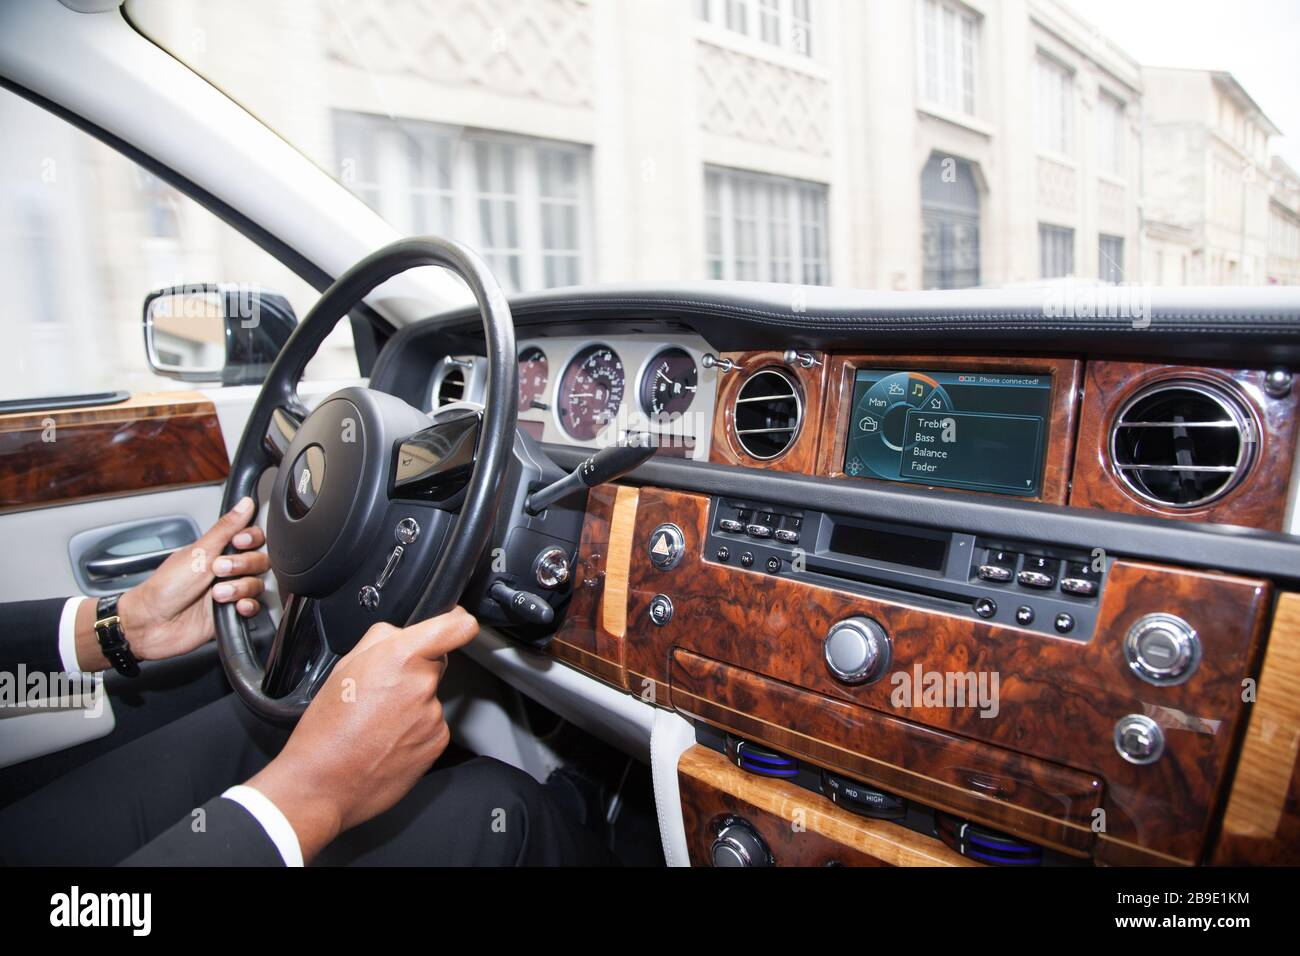 Bordeaux Aquitaine France 11 07 2019 Rolls Royce Phantom Interior View Of Luxury Car Dashboard Steering Wheel Supercar With Driver Stock Photo Alamy